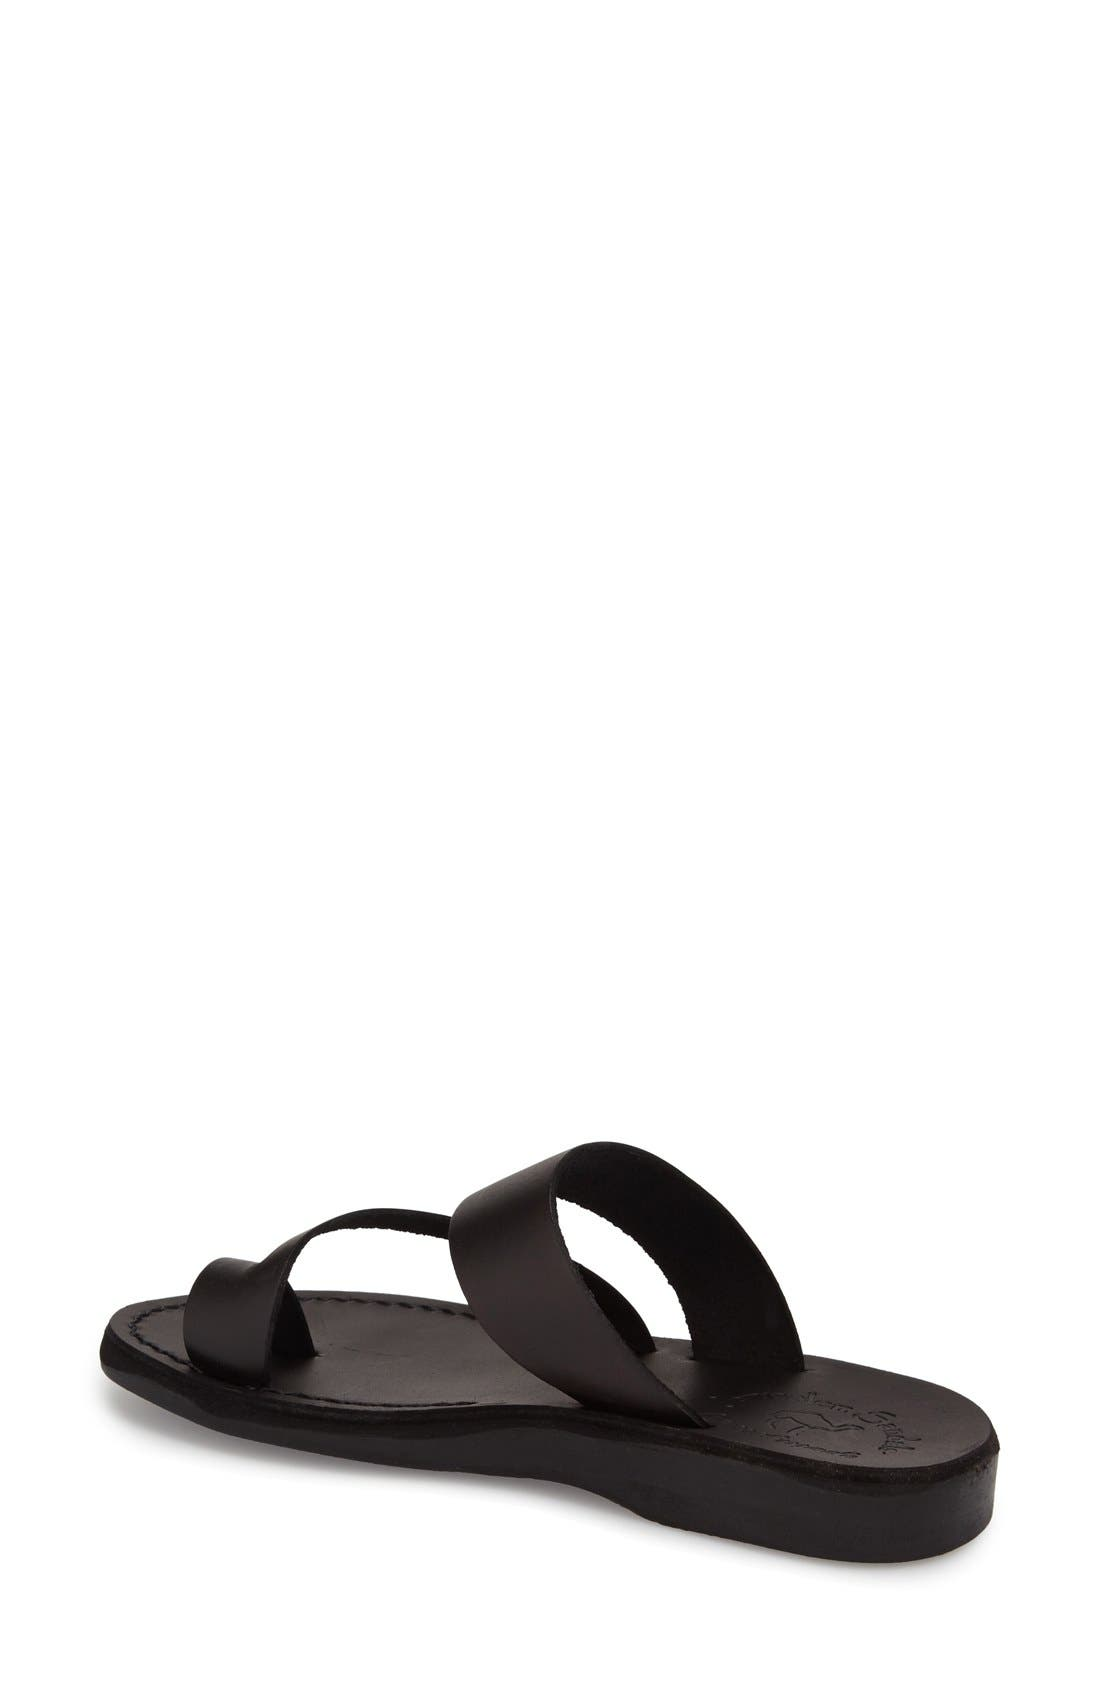 'Zohar' Leather Sandal,                             Alternate thumbnail 31, color,